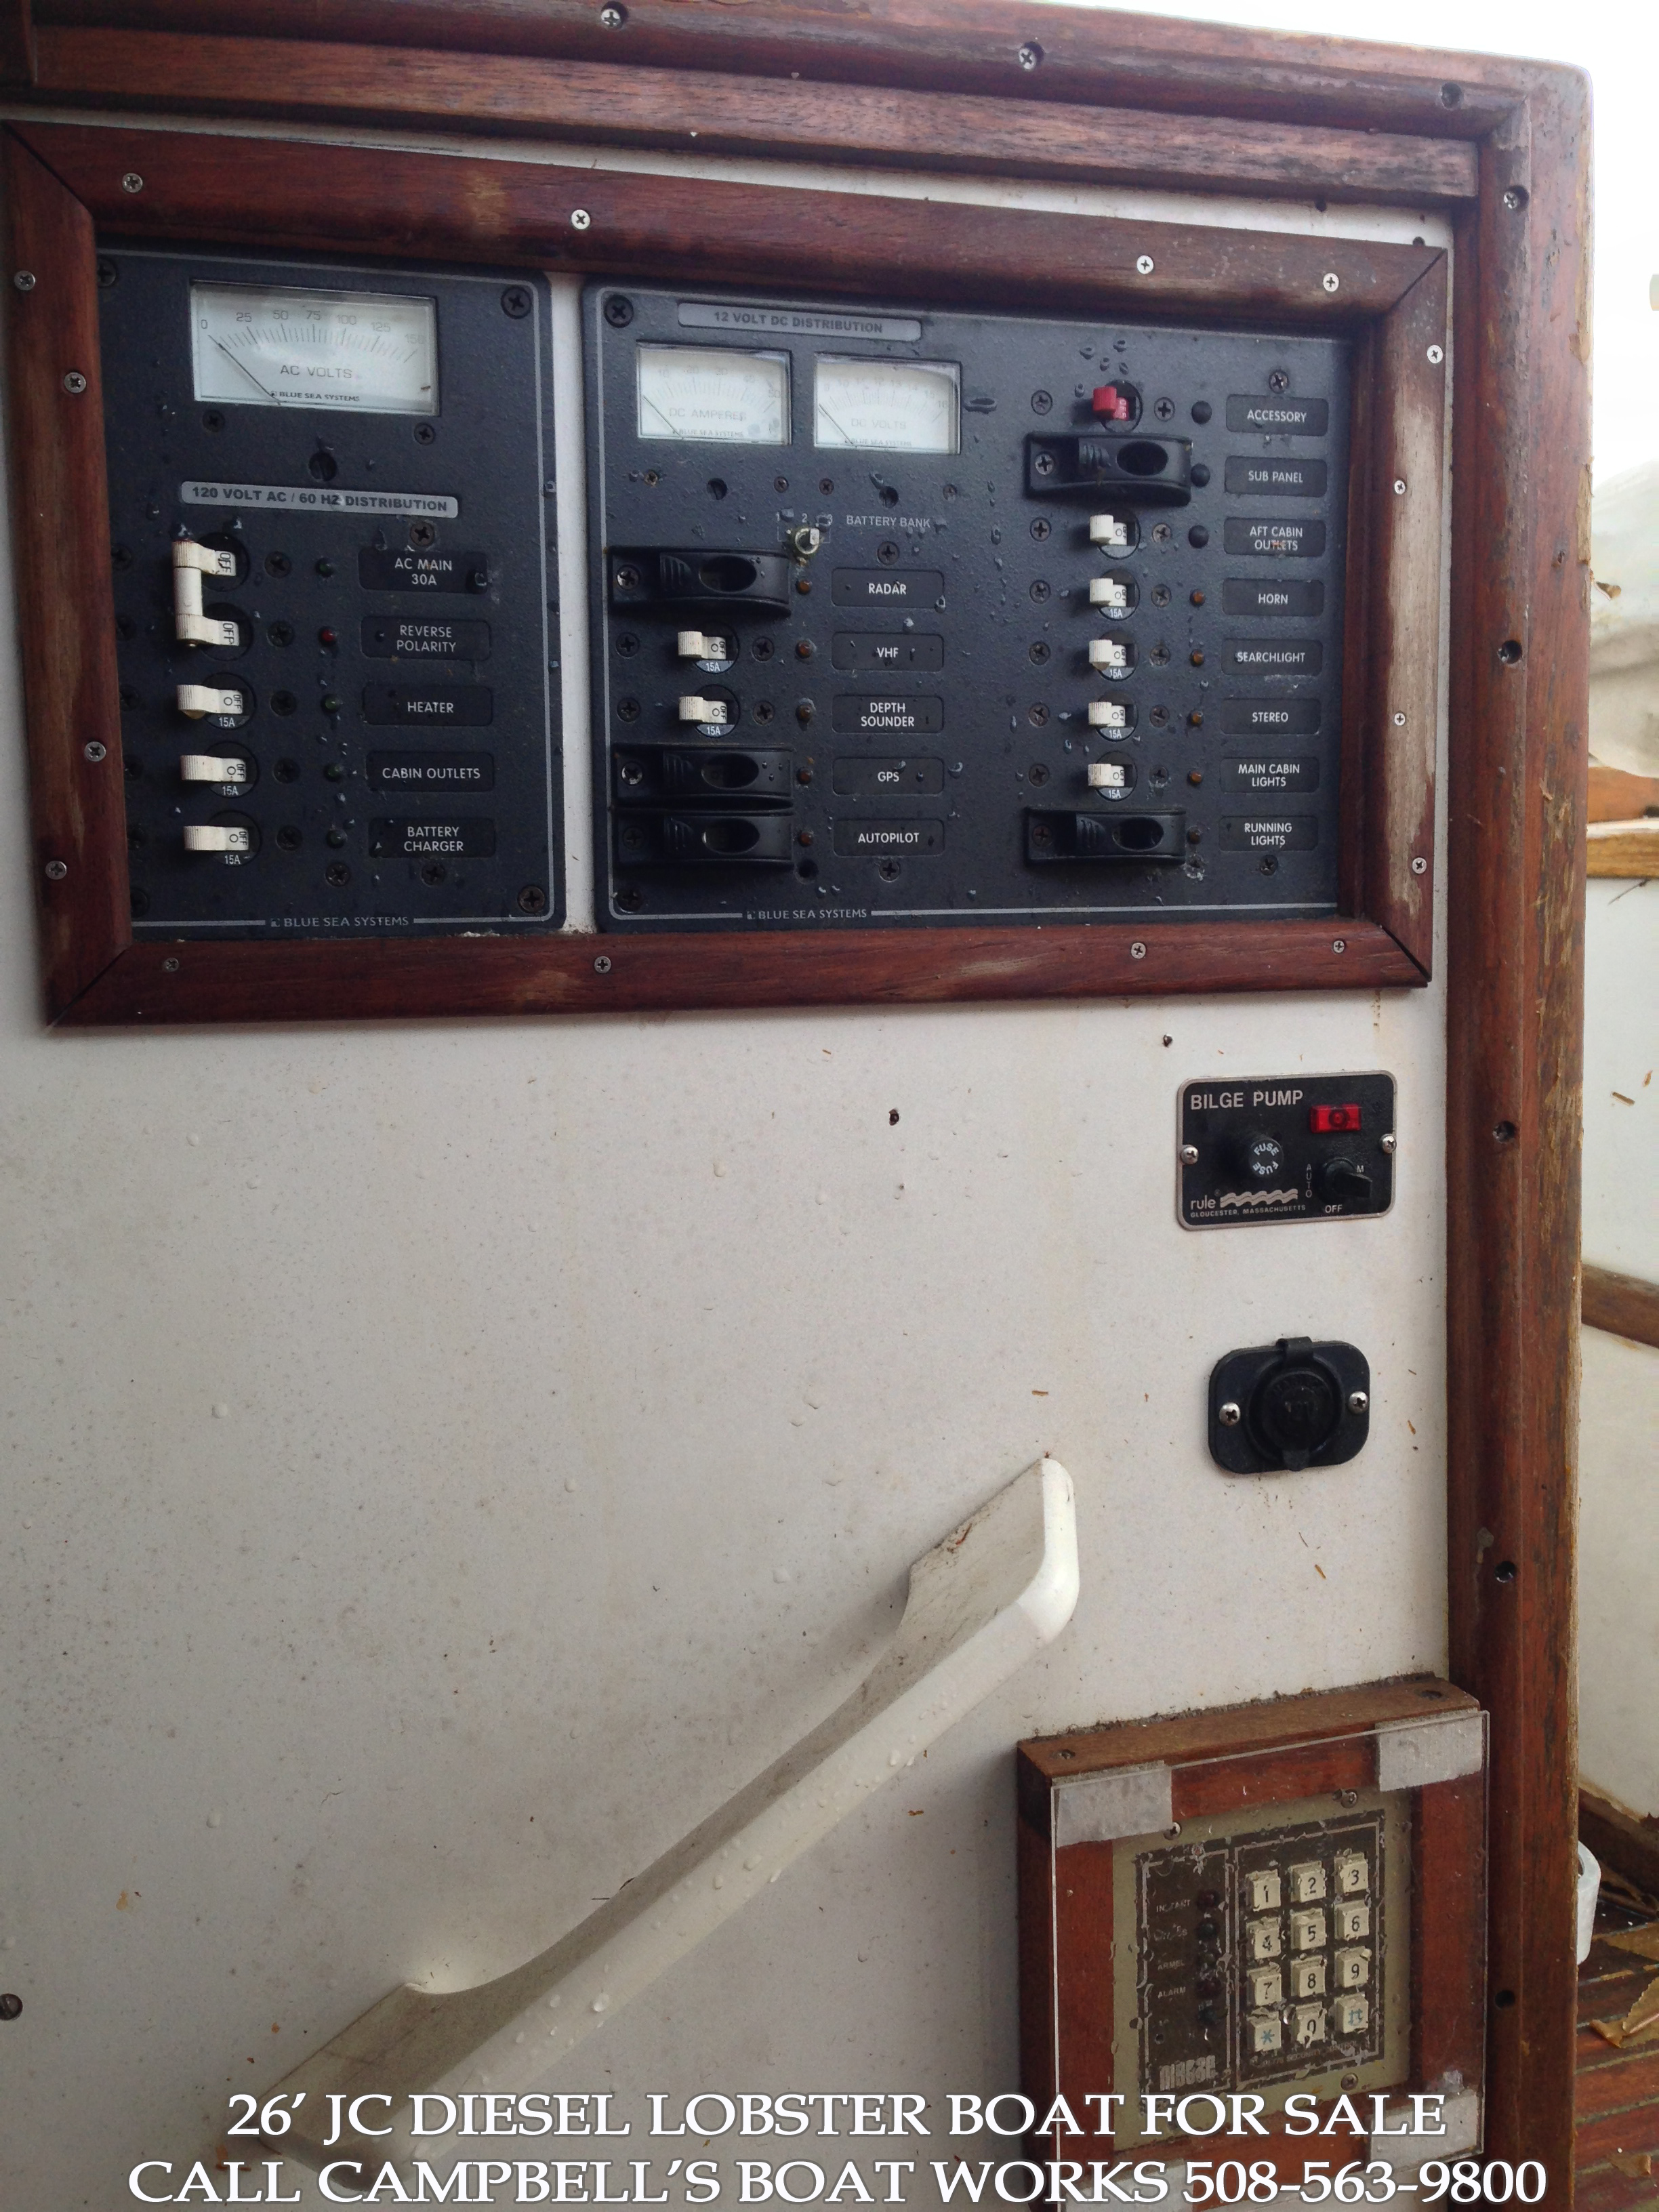 26 JC Downeast Lobster Style Diesel Boat For Sale